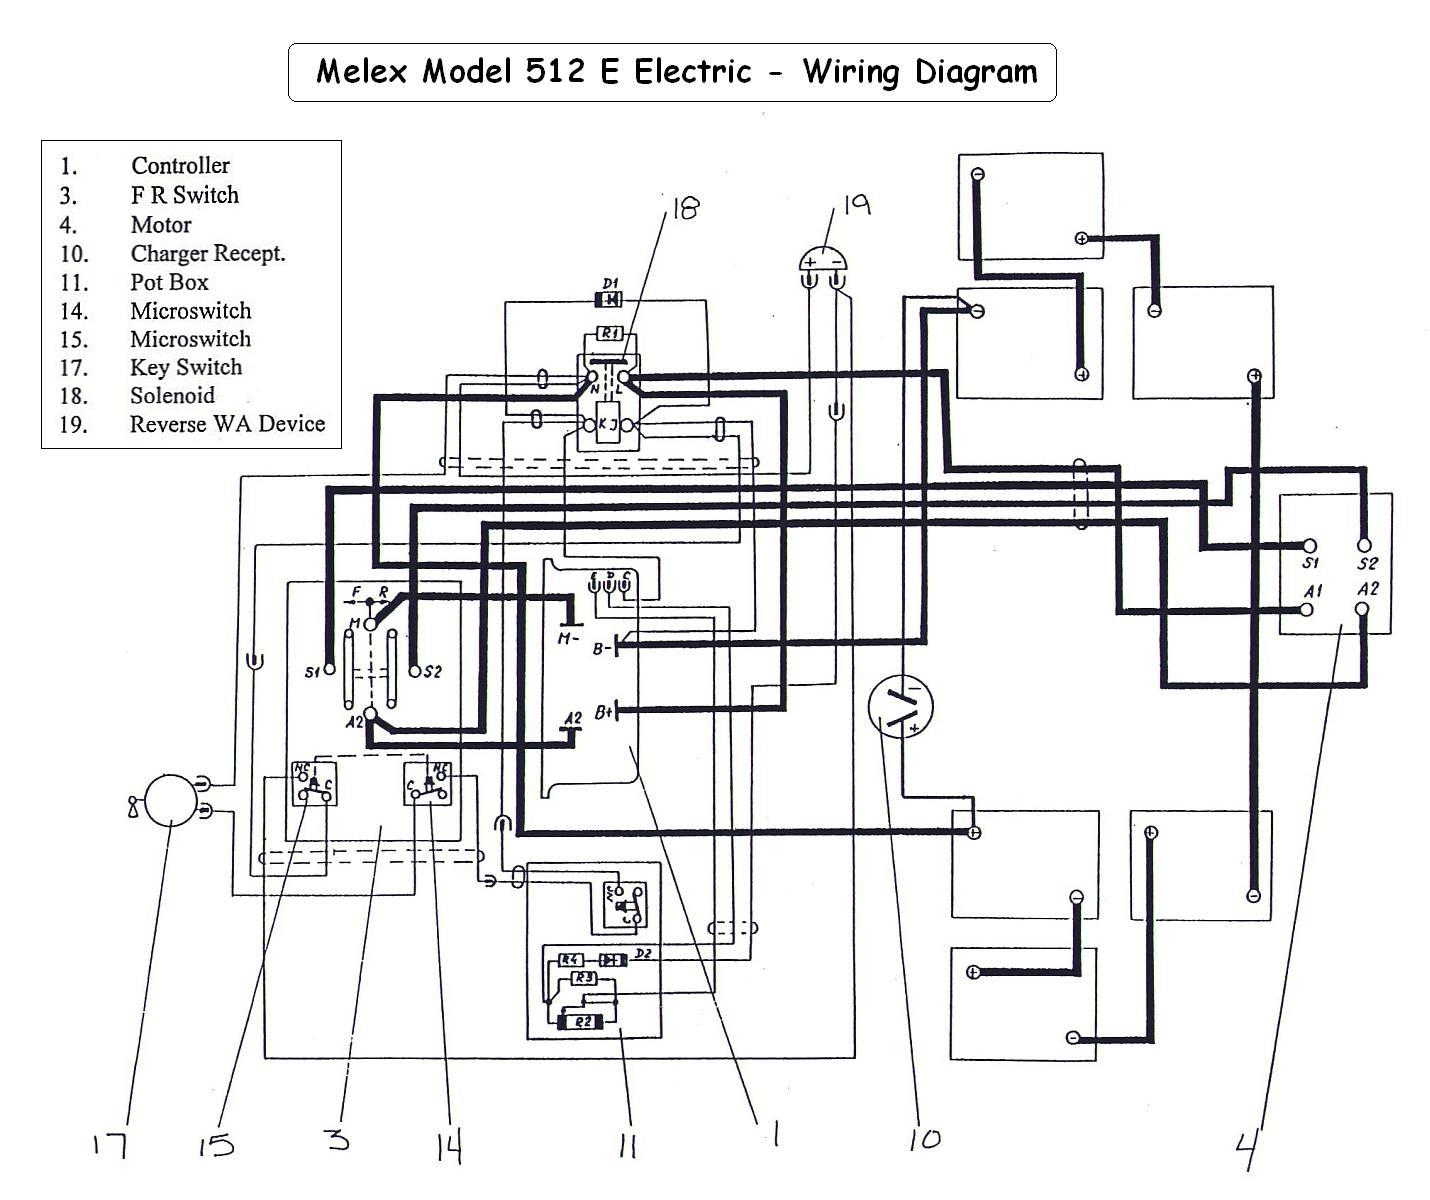 hight resolution of yamaha g1 wiring diagram 1 manualuniverse co u2022diagram columbia par car ignition wiring diagram diagram